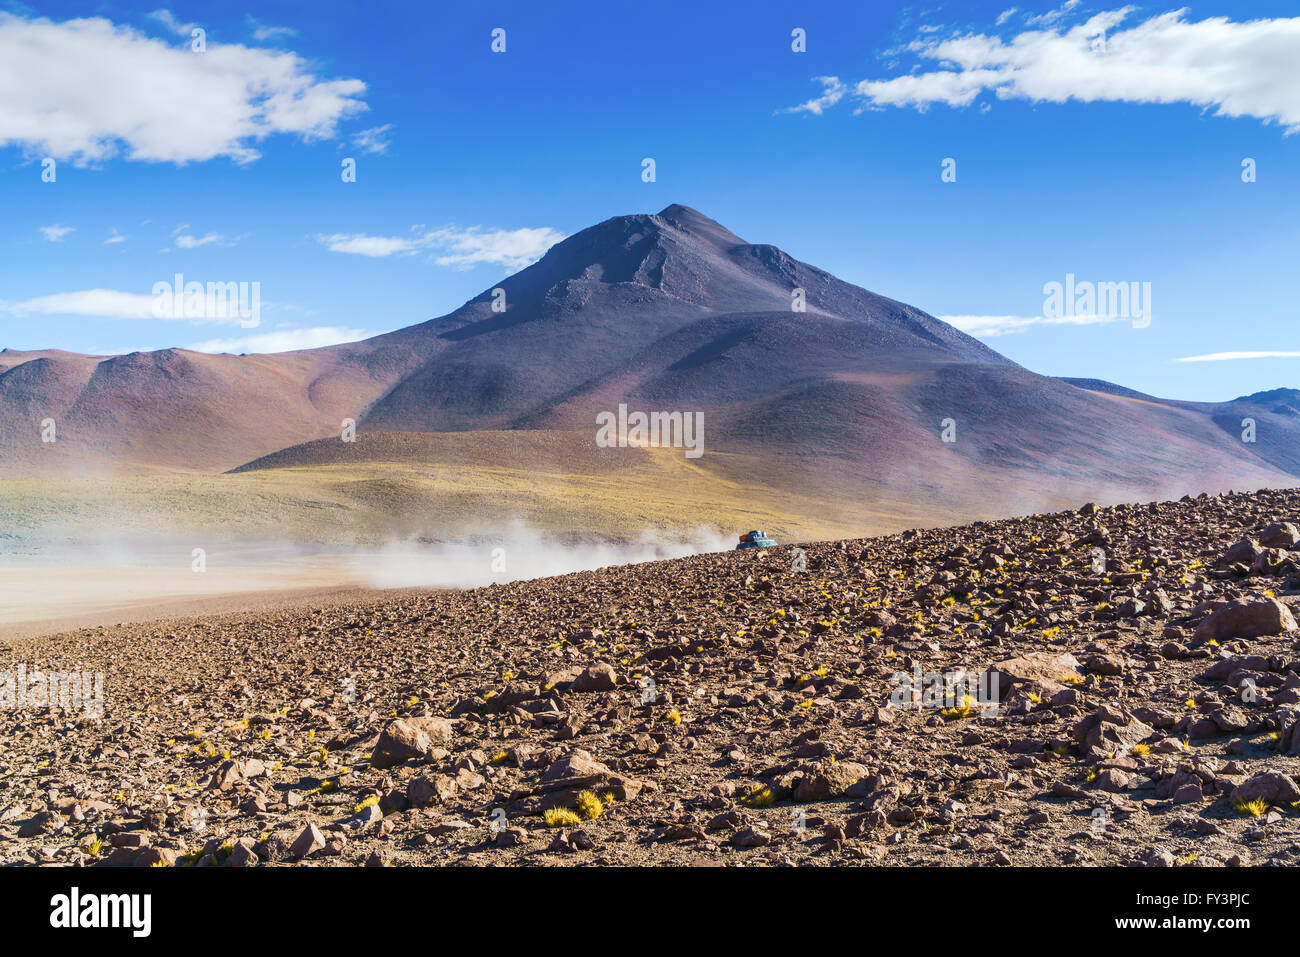 View of high mountain in The National Park, Uyuni, Bolivia - Stock Image